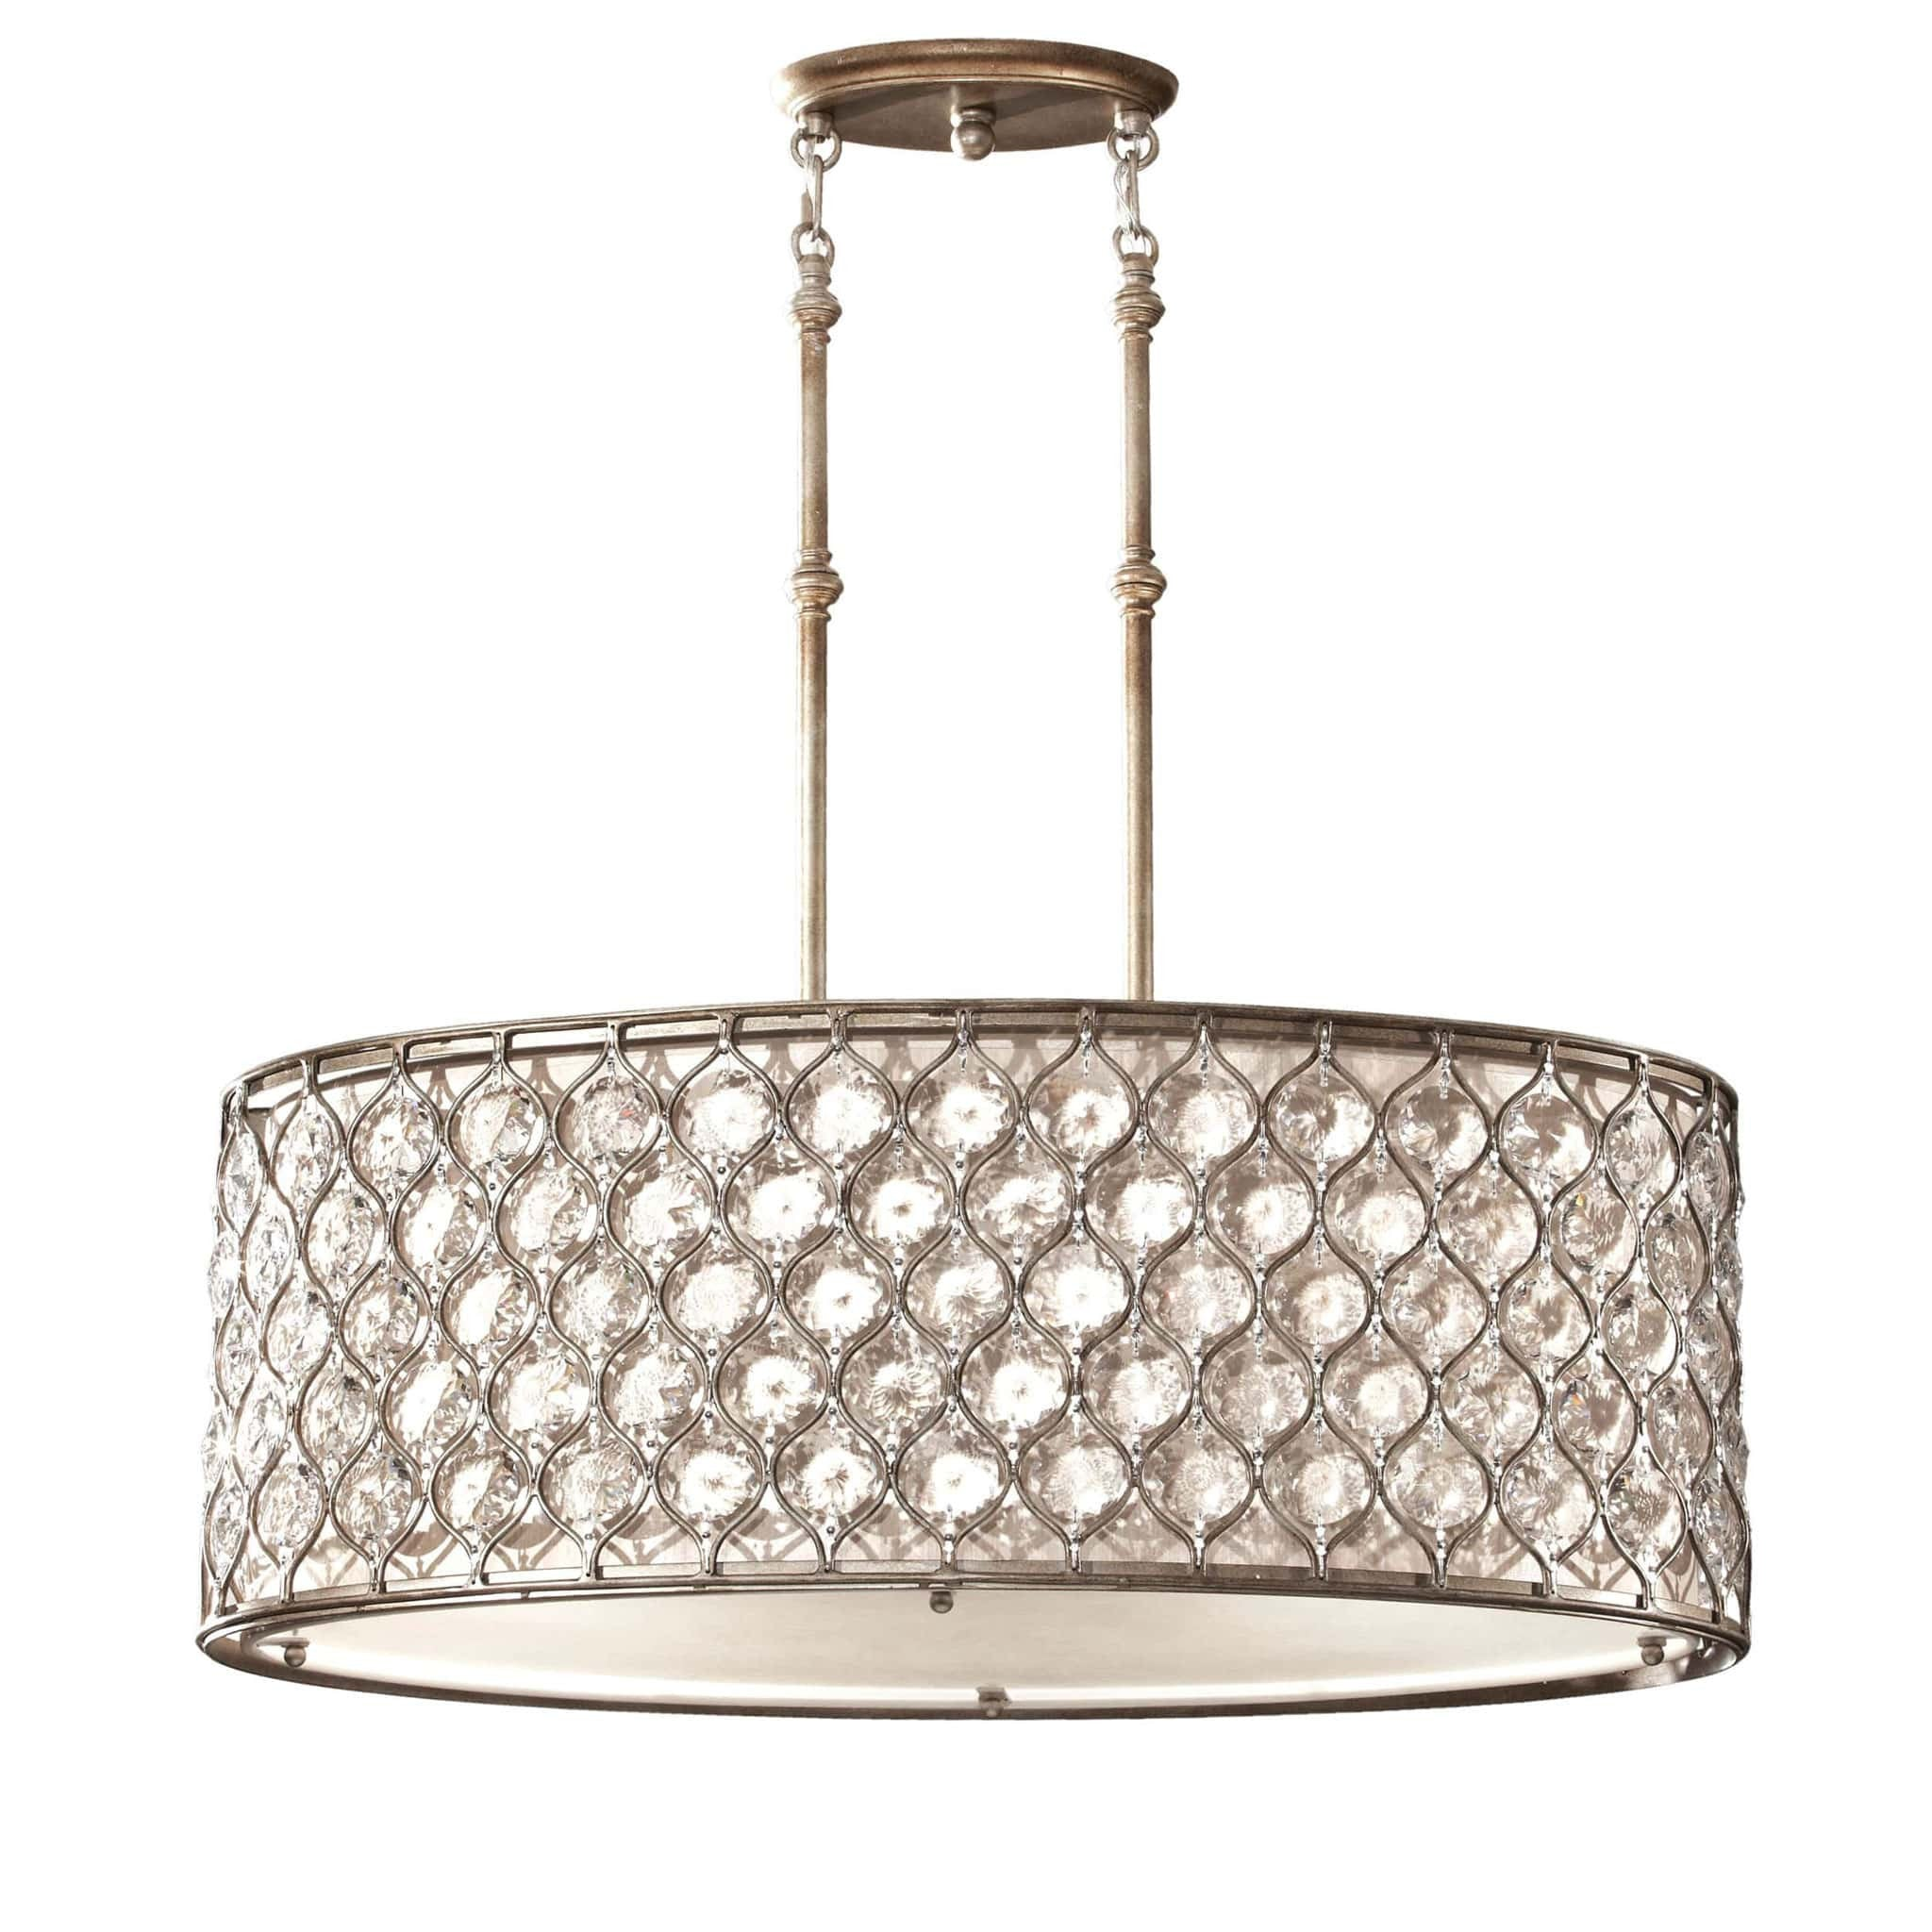 Feiss lucia 3 light burnished silver oval chandelier chandelier feiss lucia 3 light burnished silver oval chandelier feluciapa mozeypictures Image collections